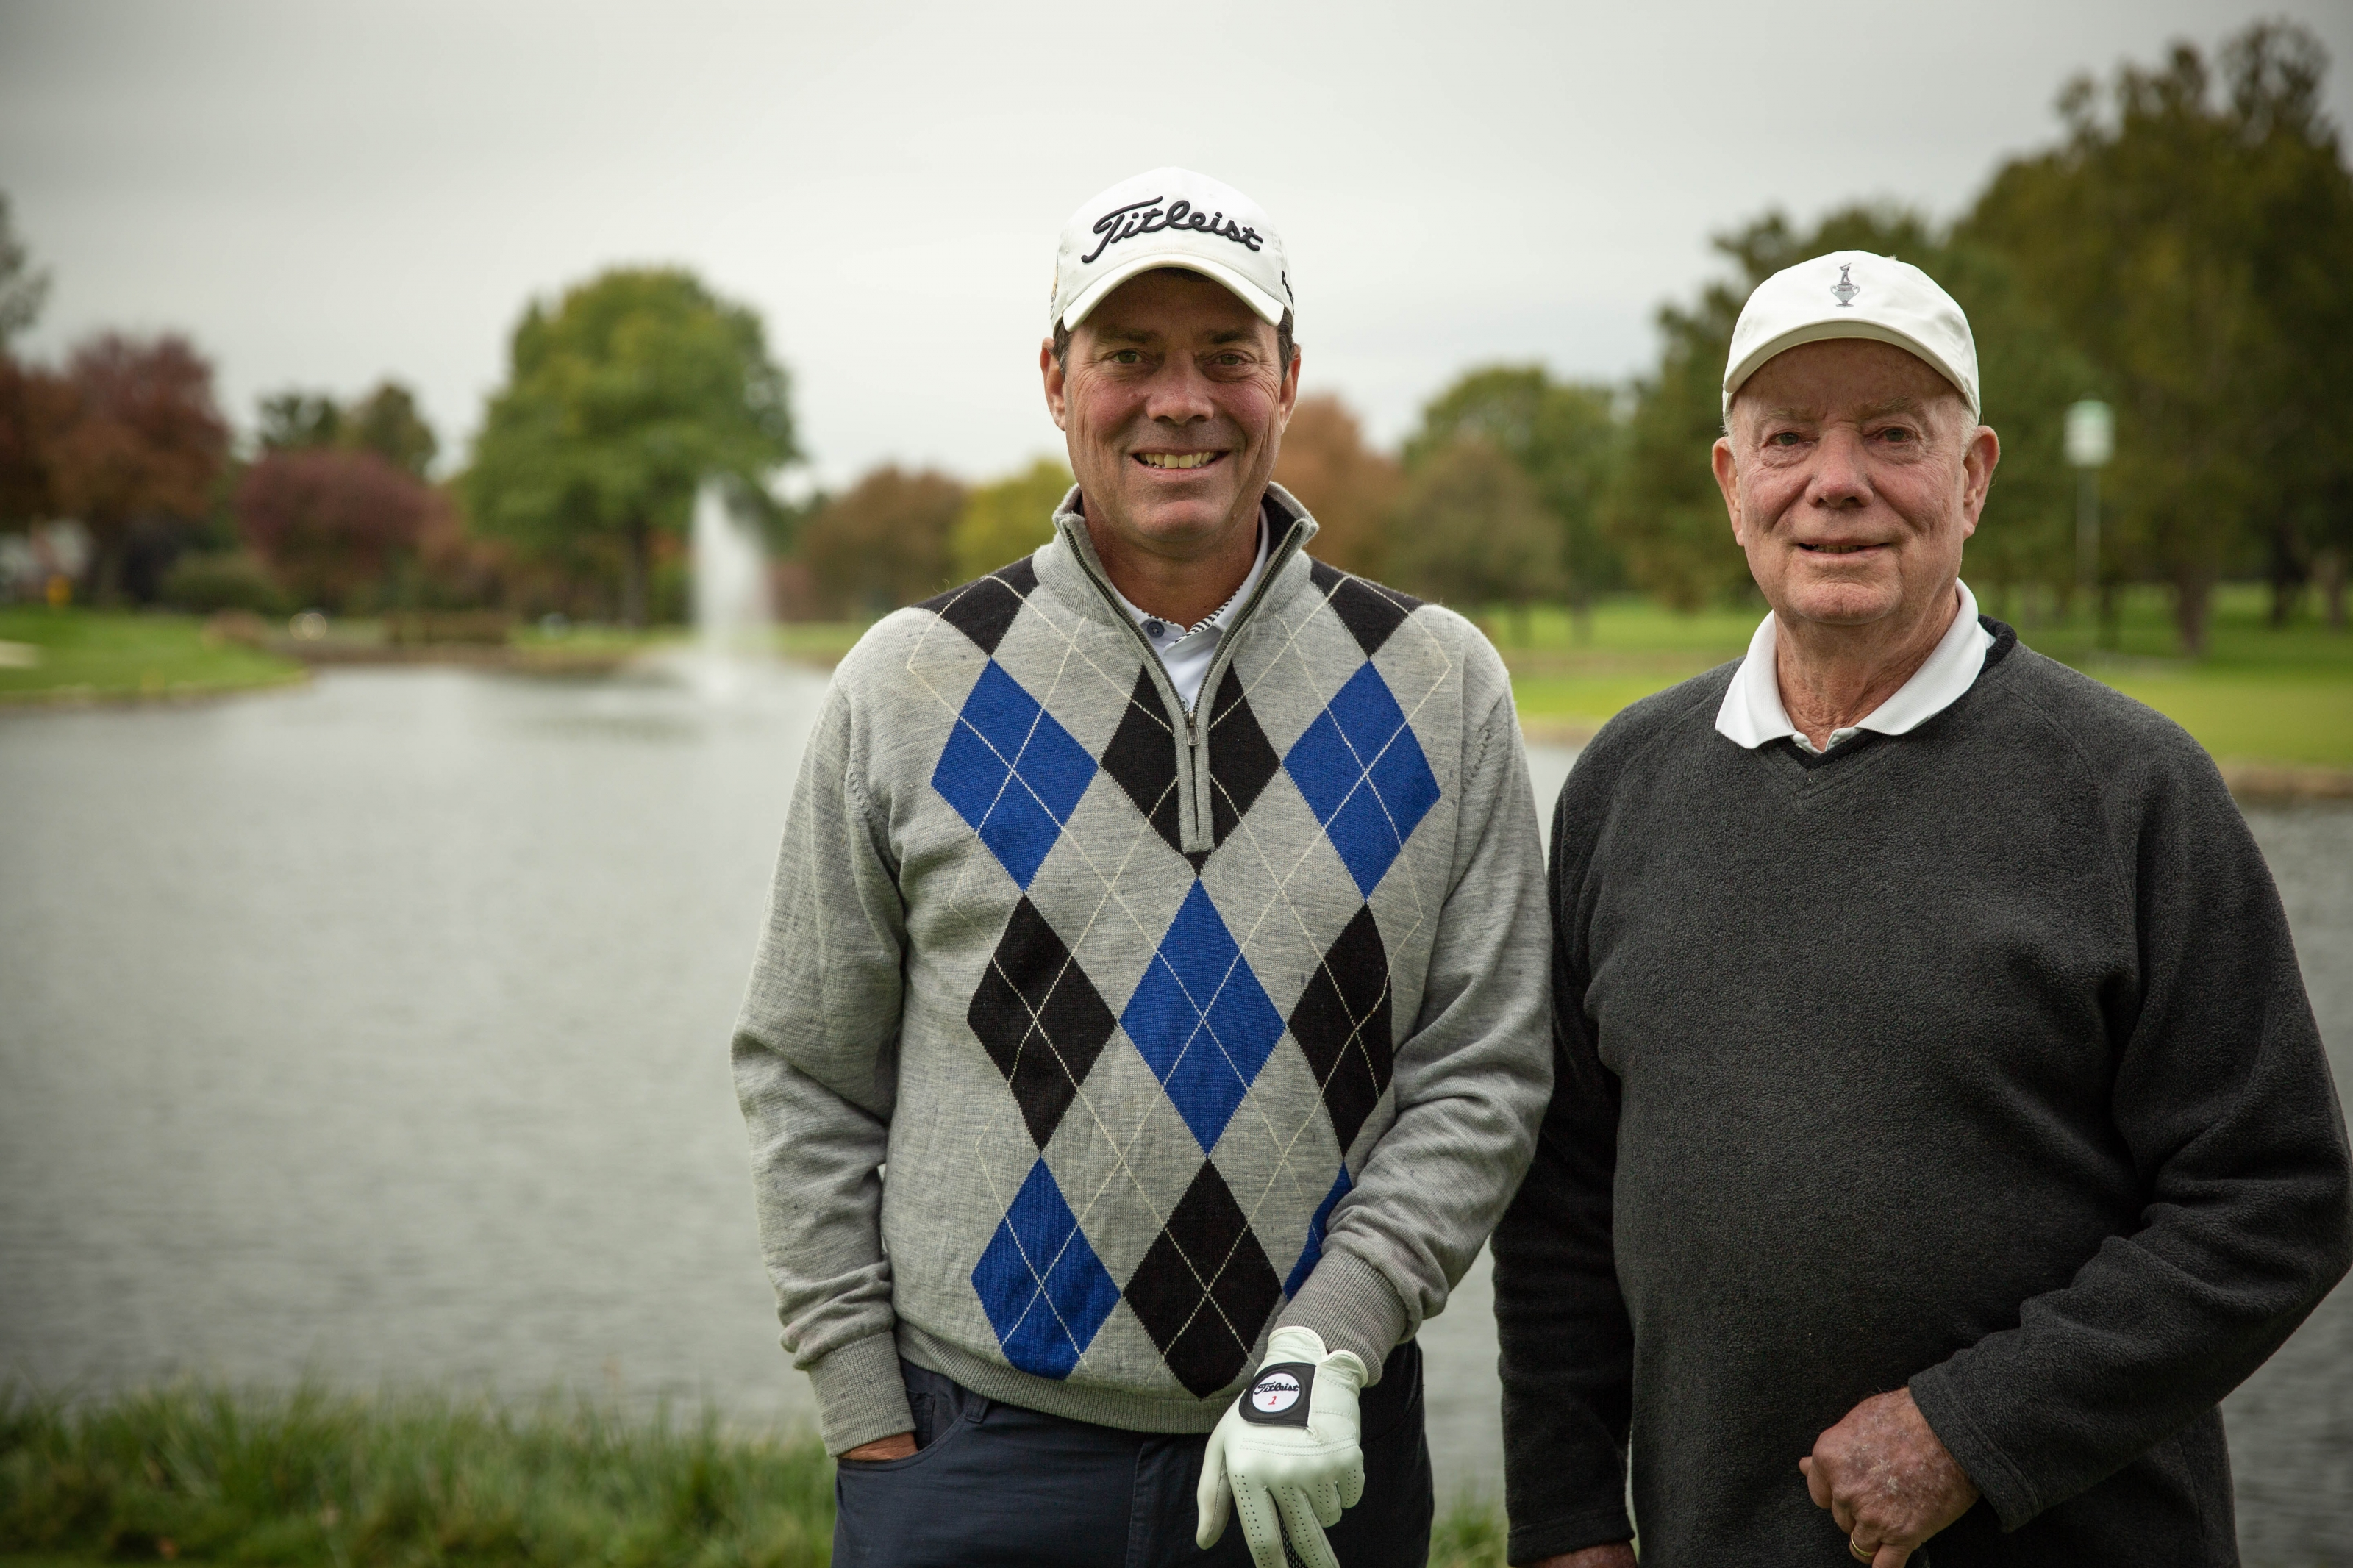 MILLERS DEDICATED TO GAME AND ILLINOIS PGA